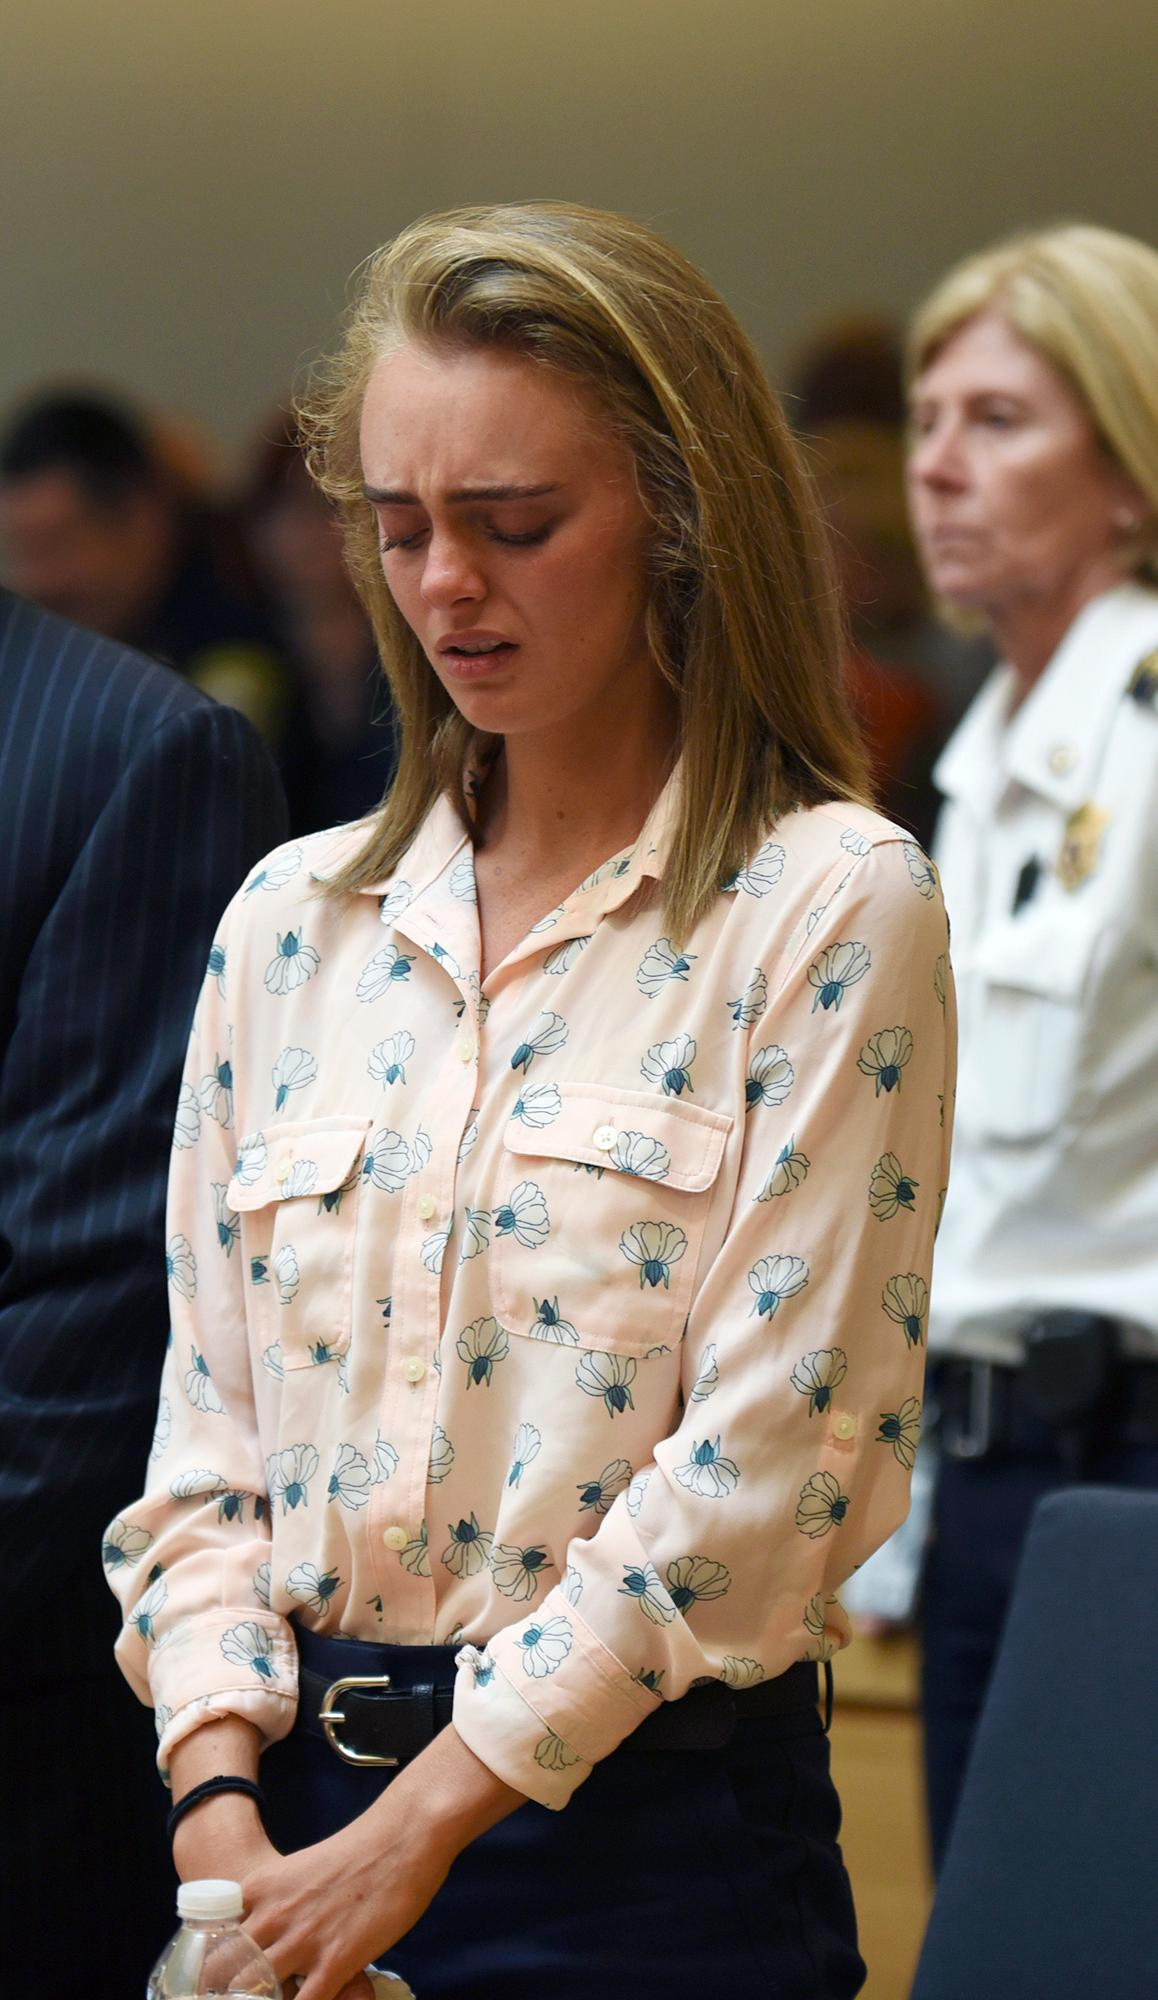 Michelle Carter cries after being found guilty of involuntary manslaughter in the suicide of Conrad Roy III, Friday, June 16, 2017, in Bristol Juvenile Court in Taunton, Mass. (Glenn C.Silva/Fairhaven Neighborhood News, Pool)